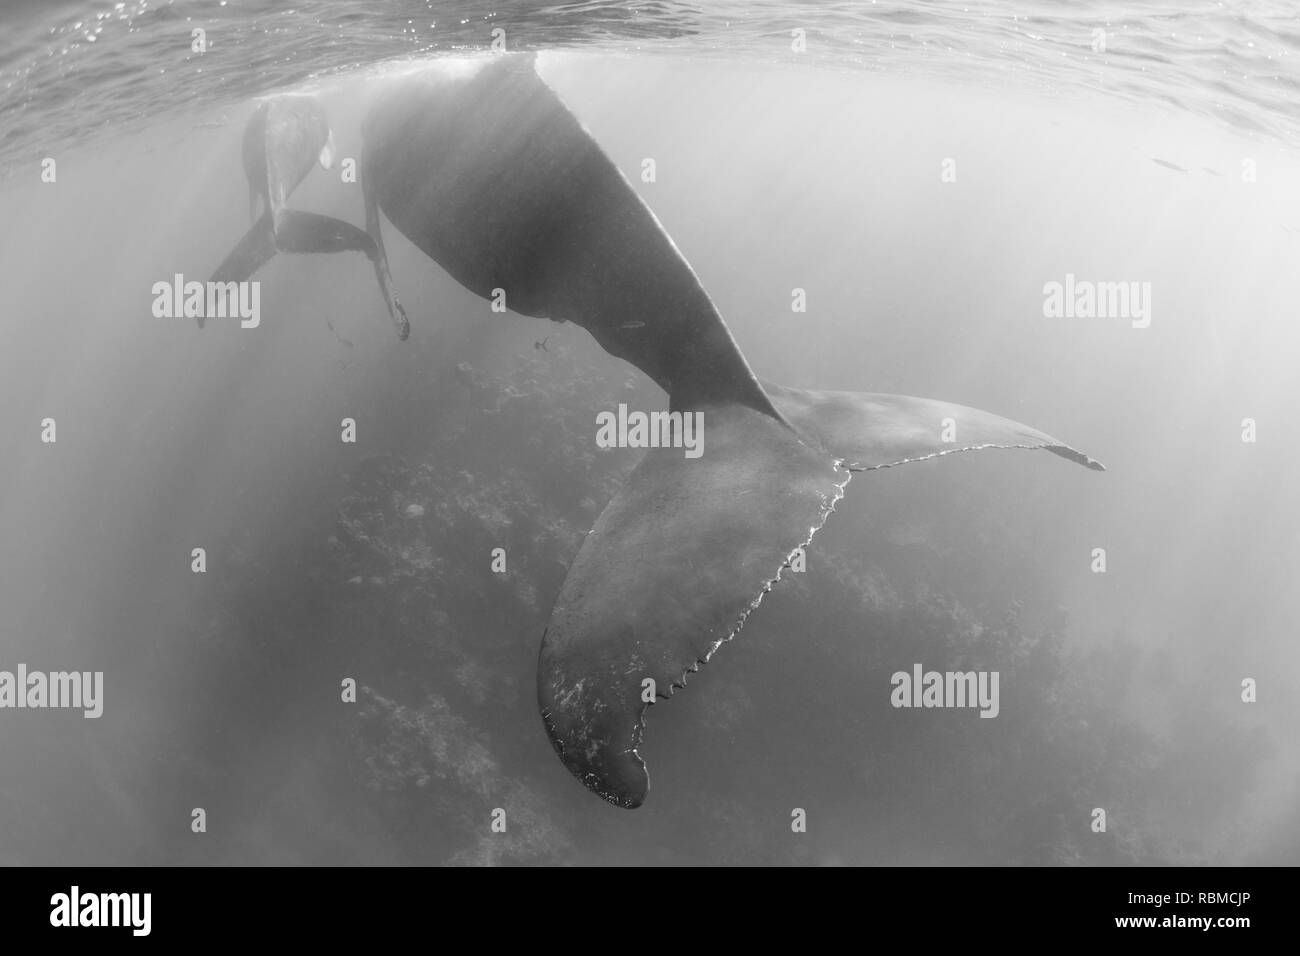 A magnificent, Humpback whale, Megaptera novaeangliae, swims in the clear, blue waters of the Caribbean Sea. - Stock Image